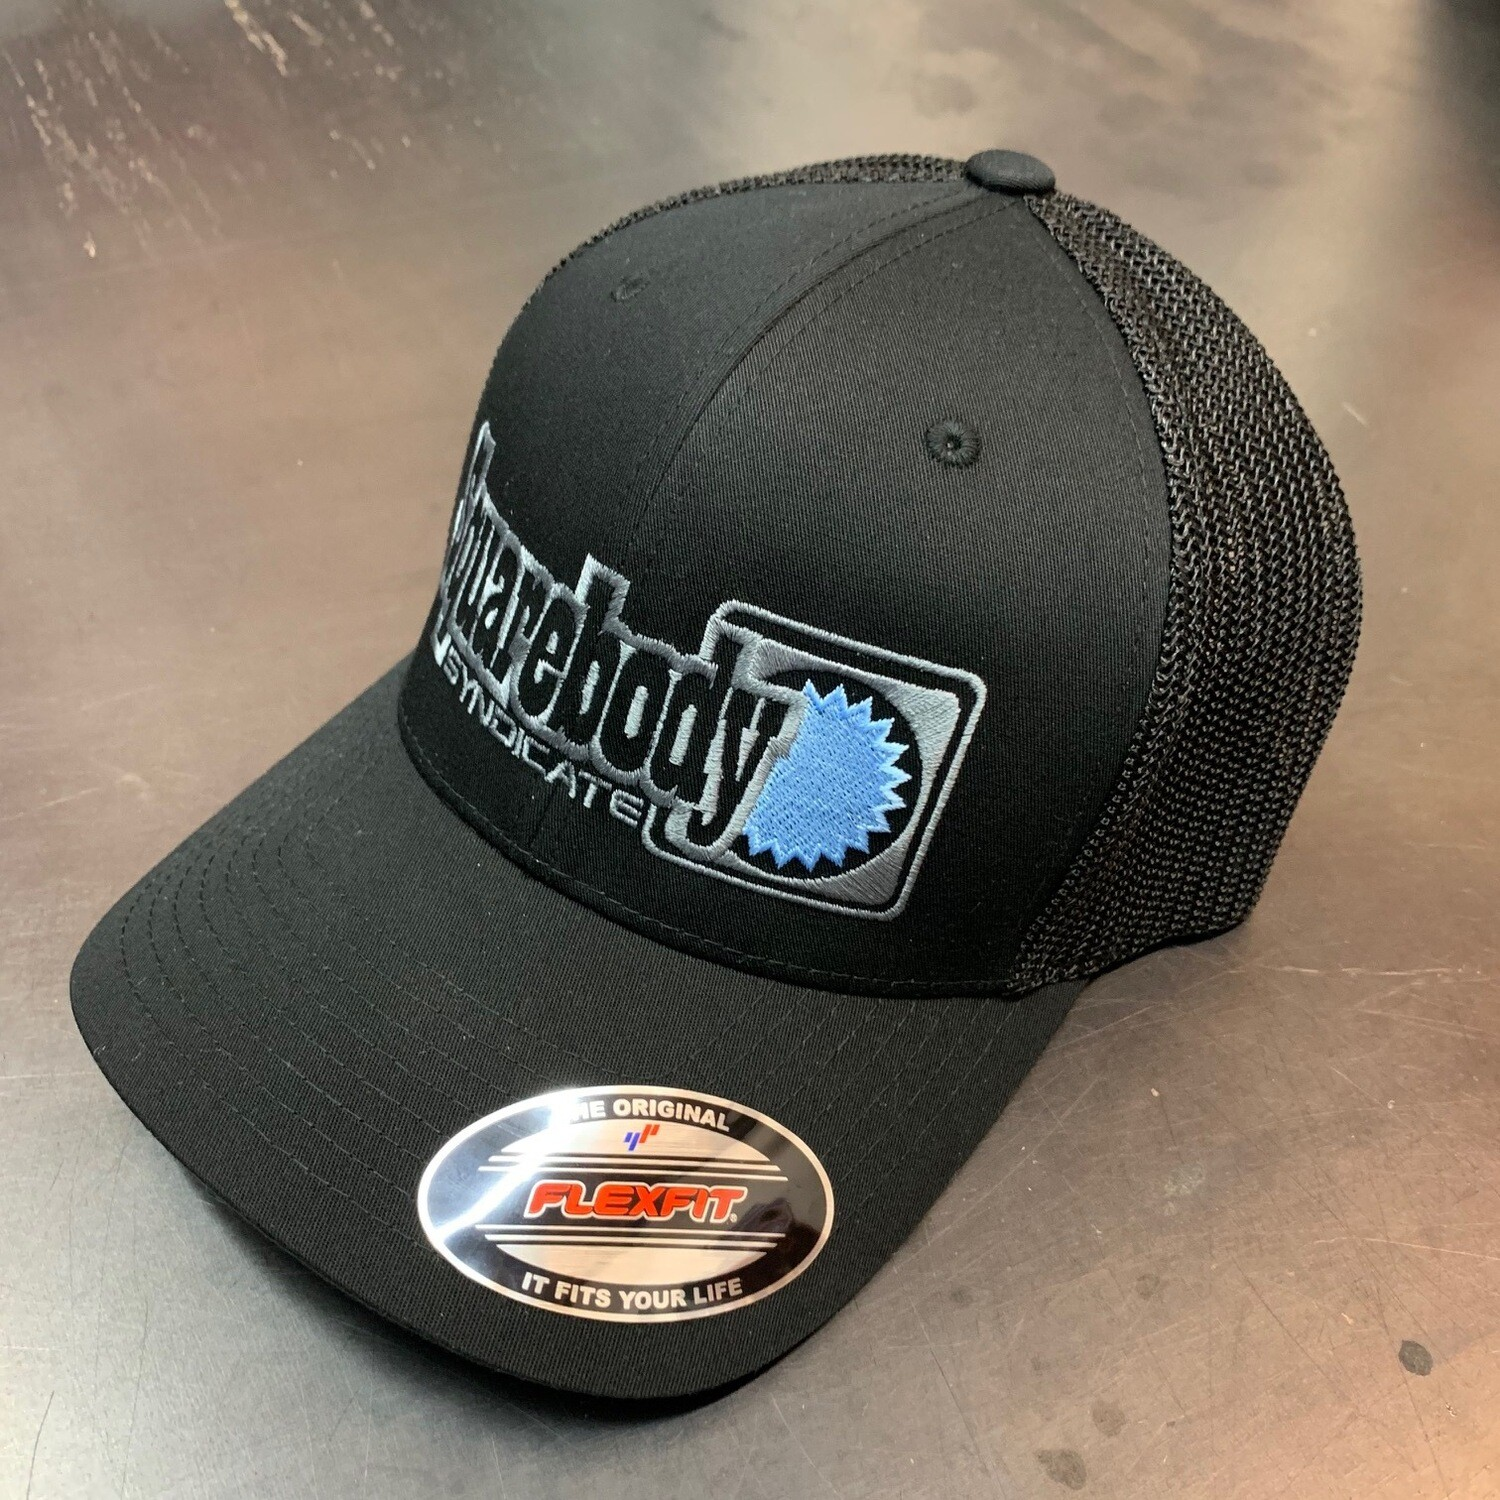 BLACK MESH FLEXFIT WITH GRAY AND LIGHT BLUE SBS SYNDICATE LOGO #4 HAT